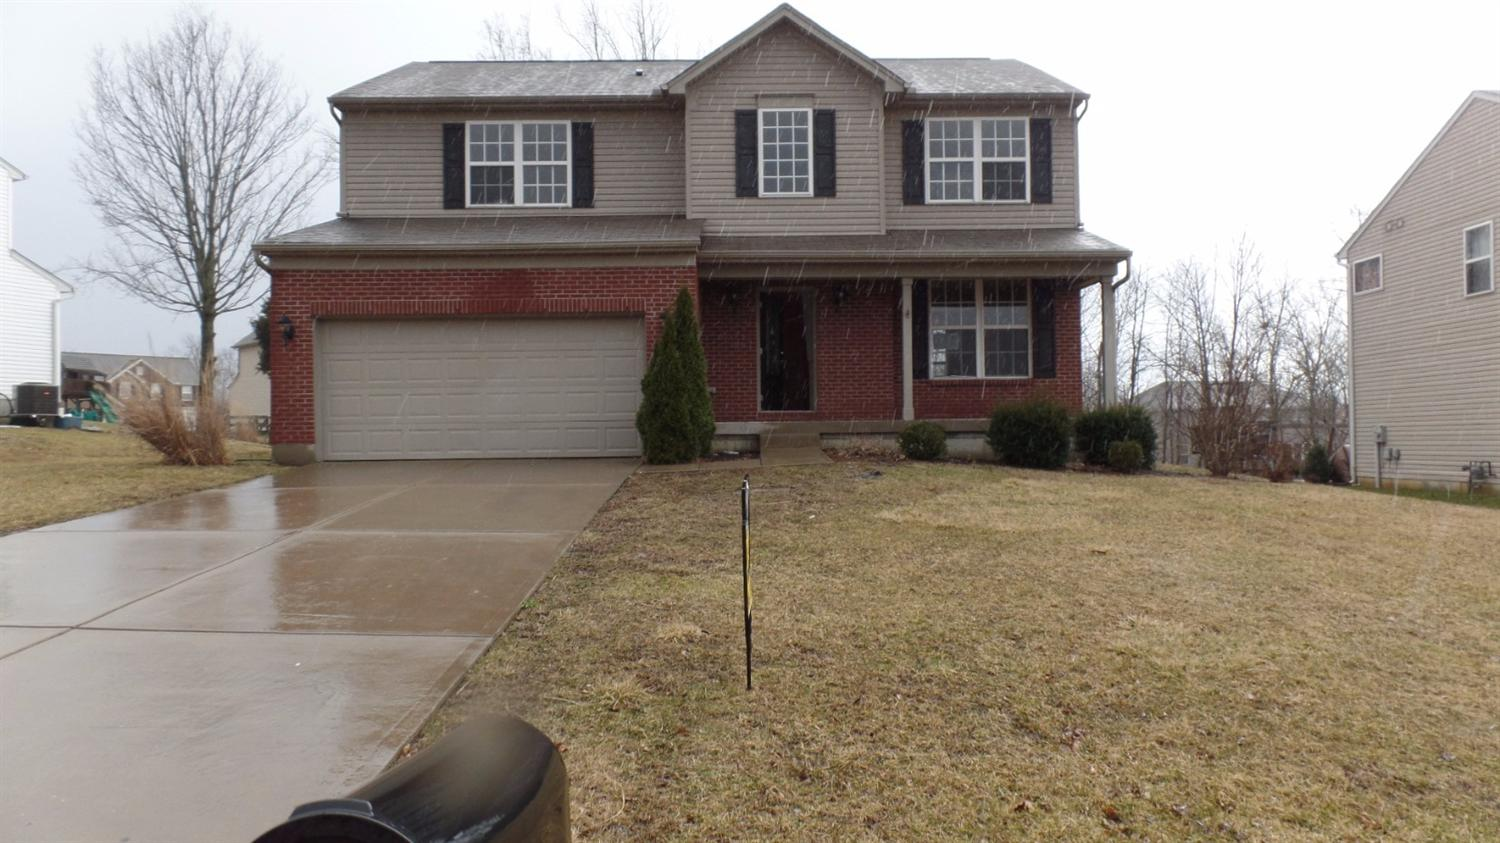 Photo 1 for 6368 Stonemill Dr Independence, KY 41051